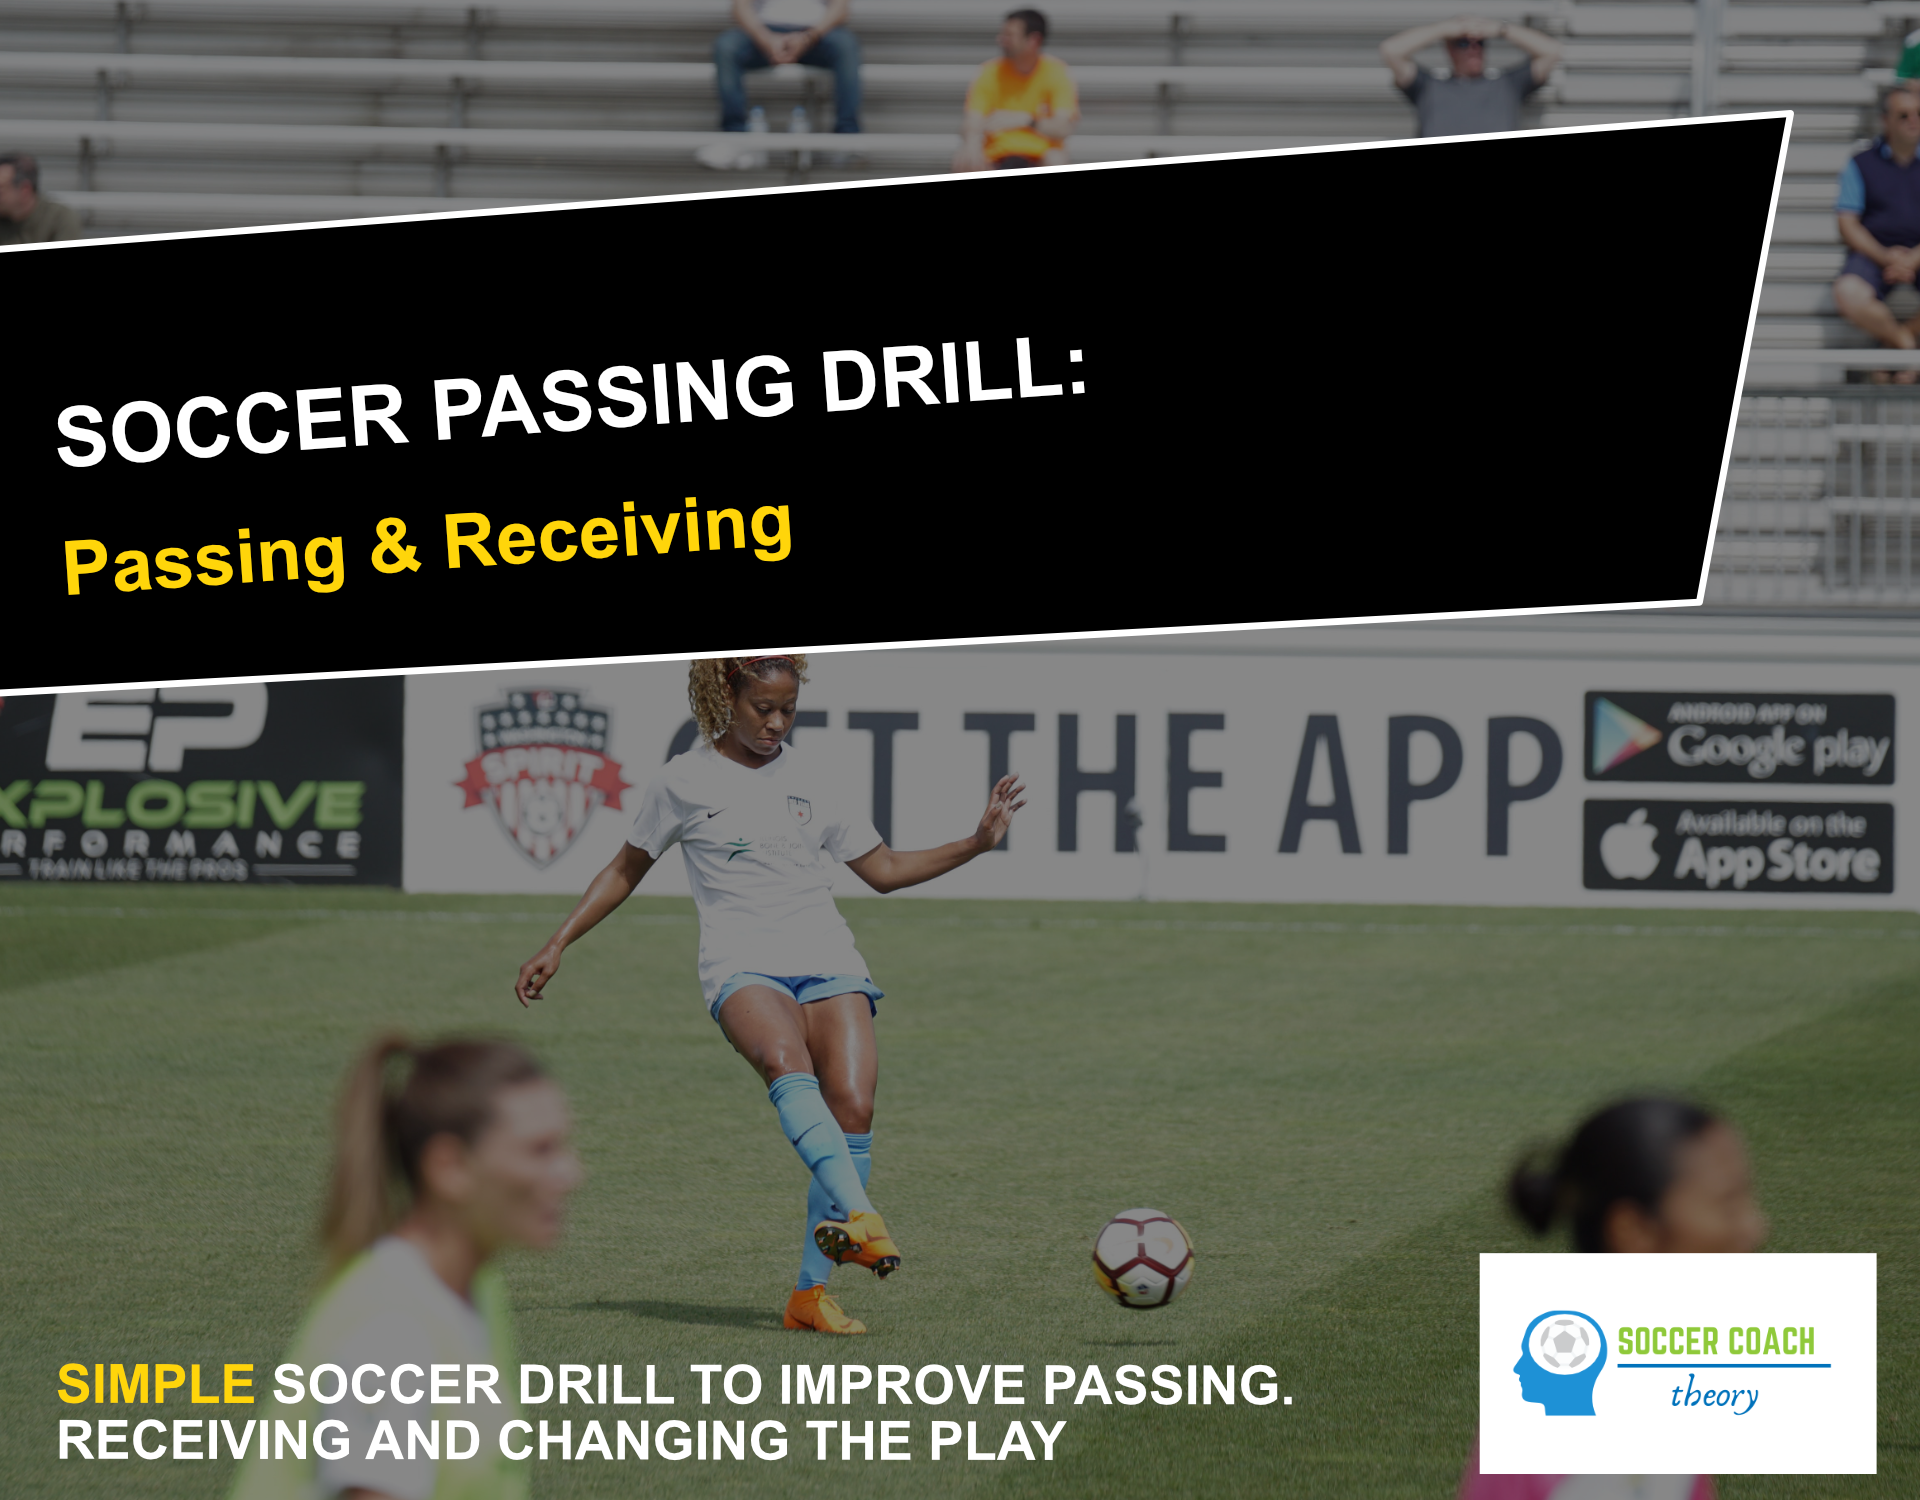 Soccer passing and receiving drill